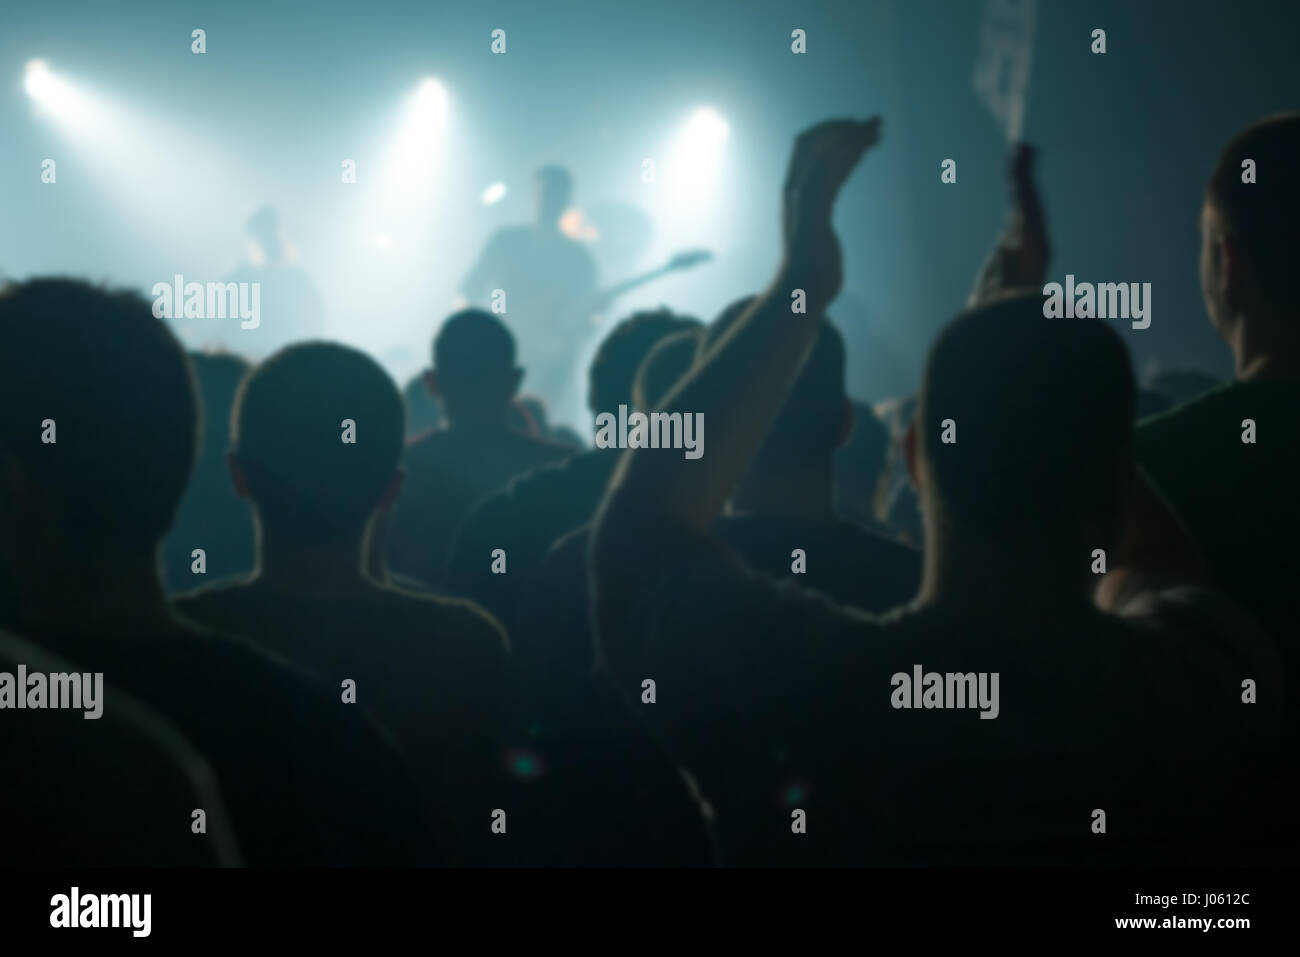 Live Concert Background